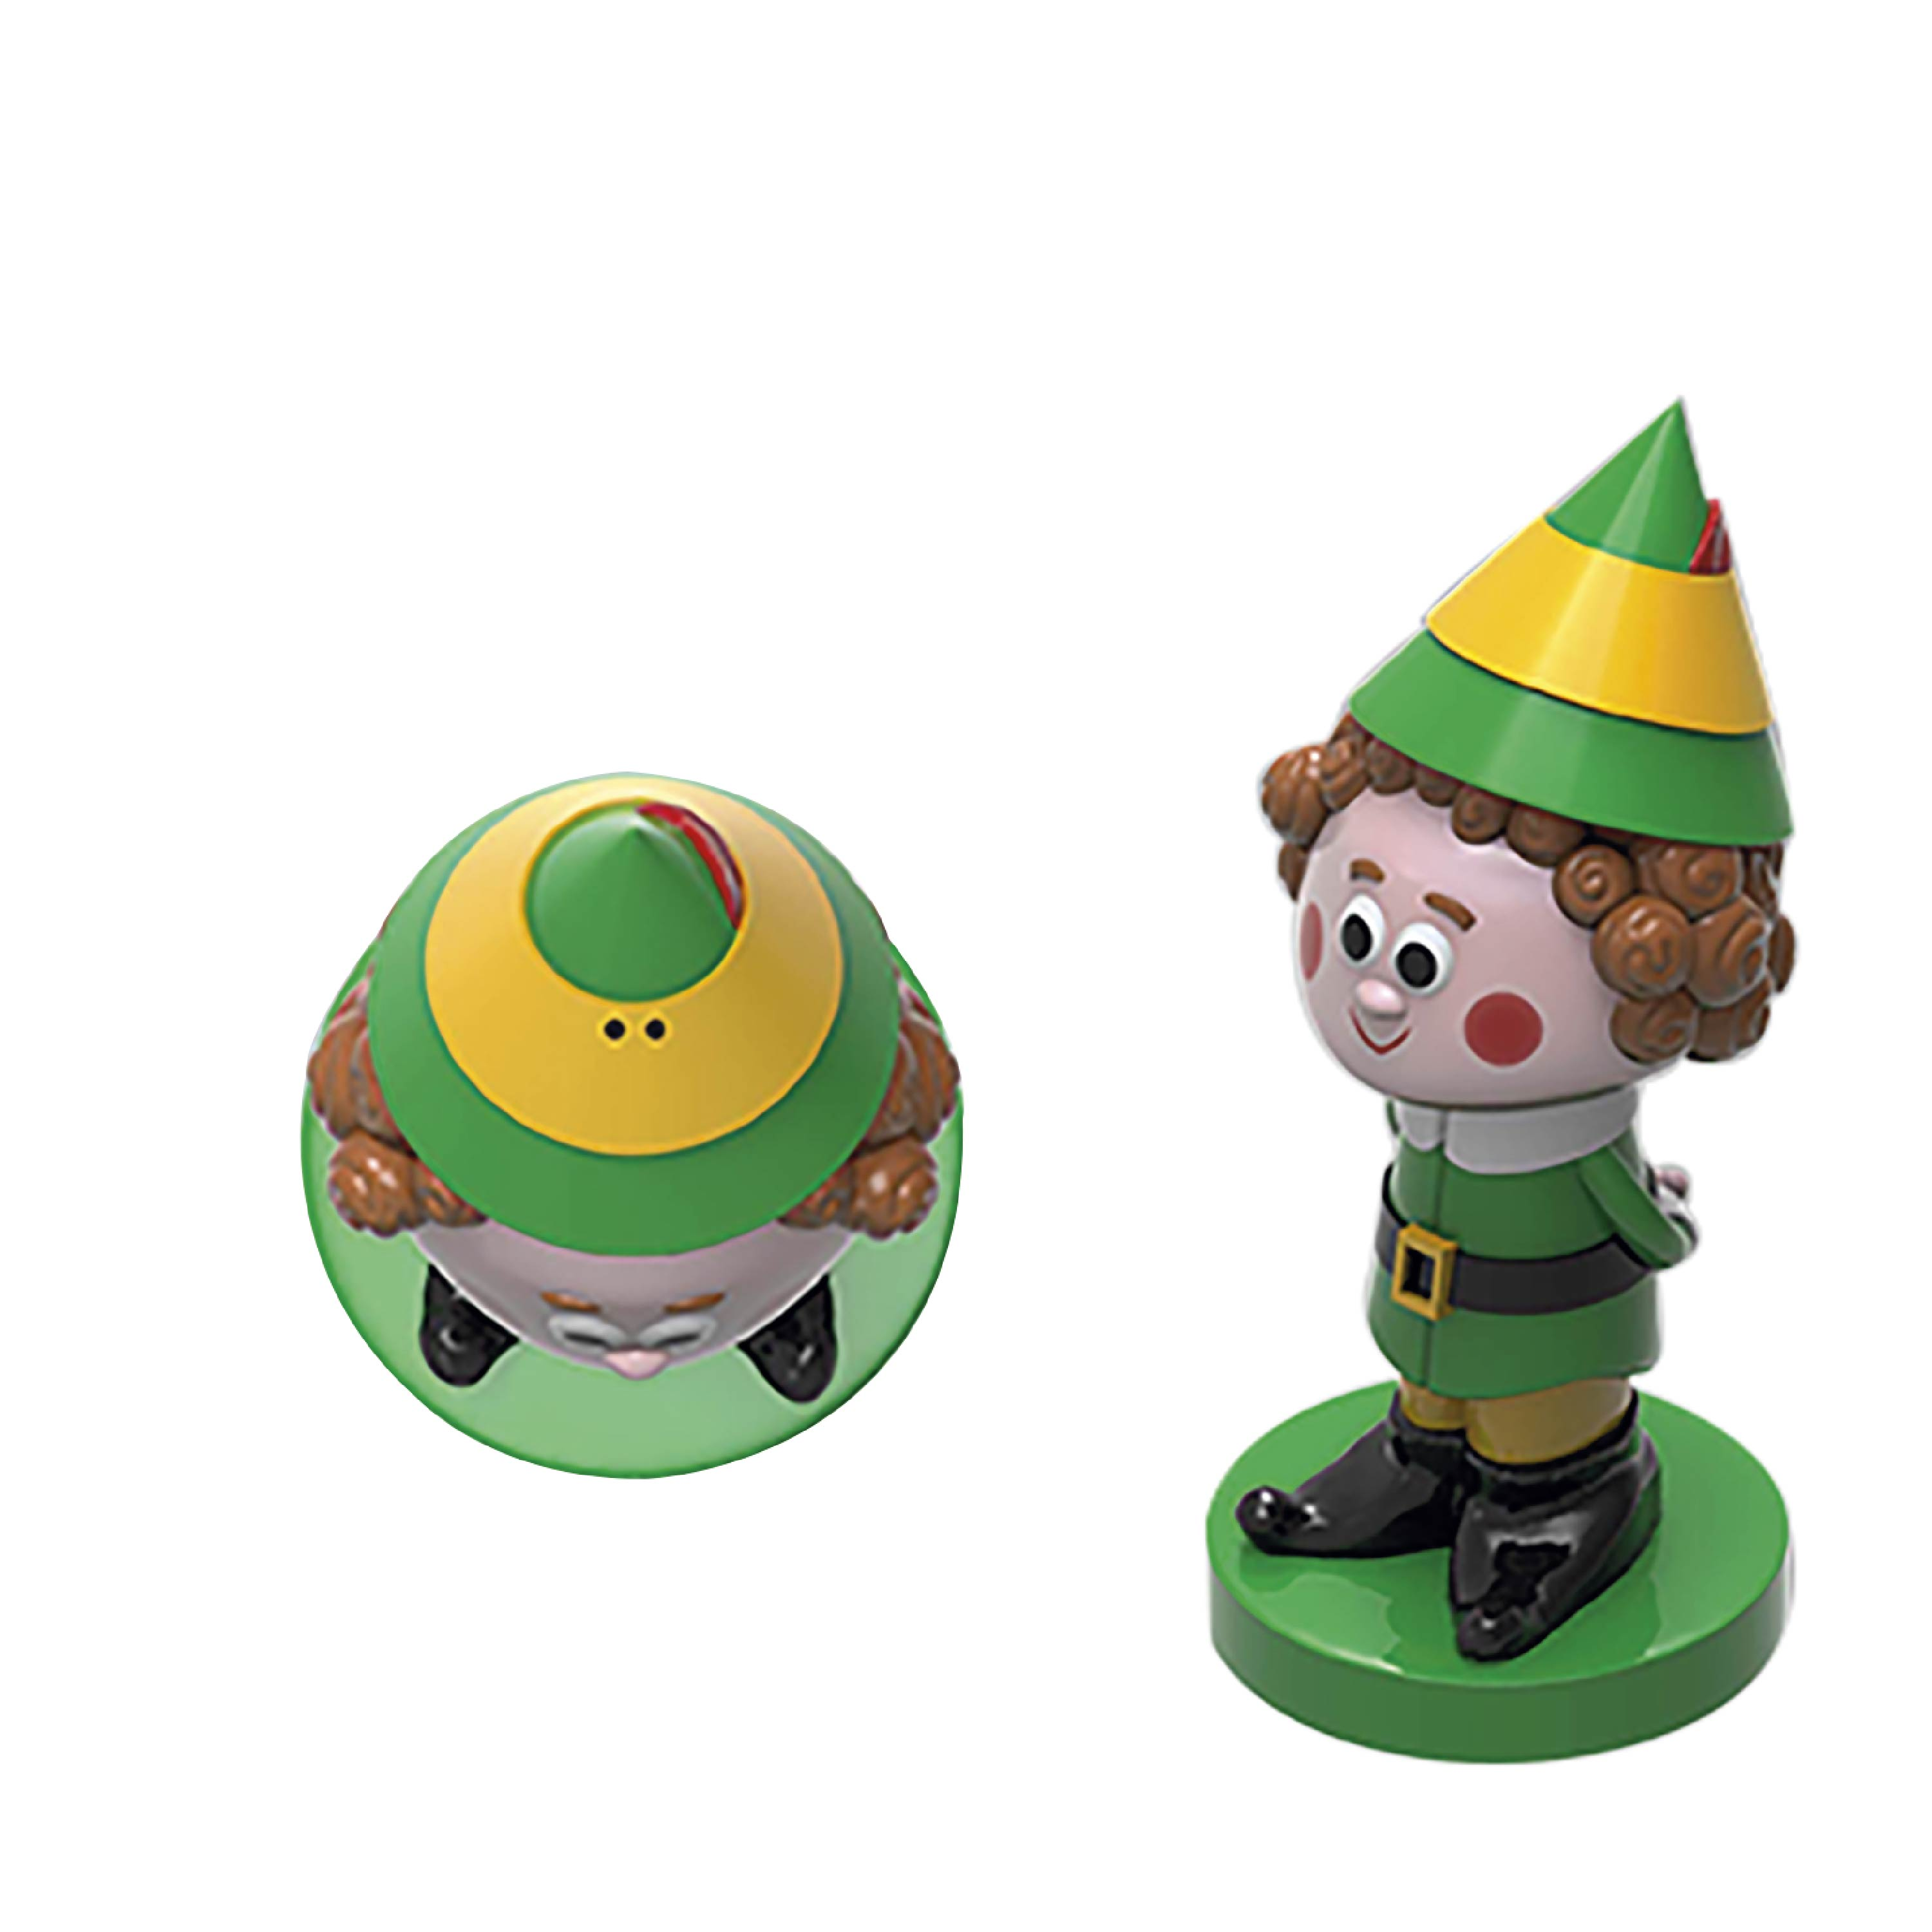 Christmas Collectibles Salt and Pepper Shaker Set, Elf & Snowman, 2-piece set slideshow image 4